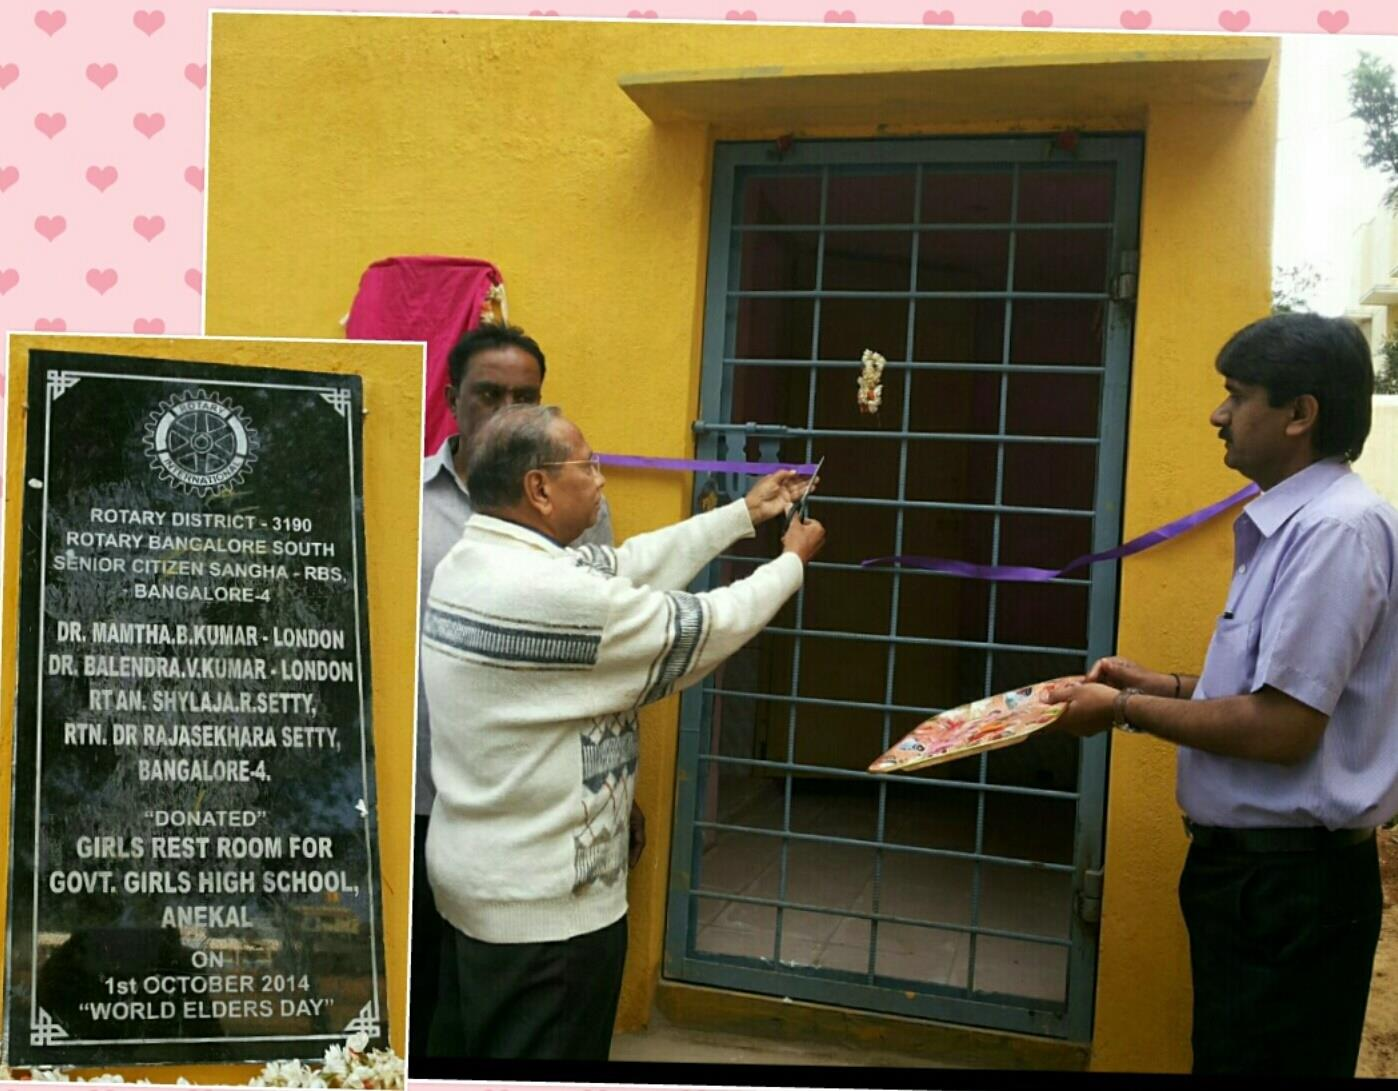 Stories Rotary Club Of Bangalore South Savico Ekstra Virgin Coconut Oil By Sagha A Comfort Station For Girls Was Inaugurated Rtn Dr Rajasekhara Setty Chairman Sr Citizens Ri Dist 3190 On 24th Dec 2014 Speaking This Occasion